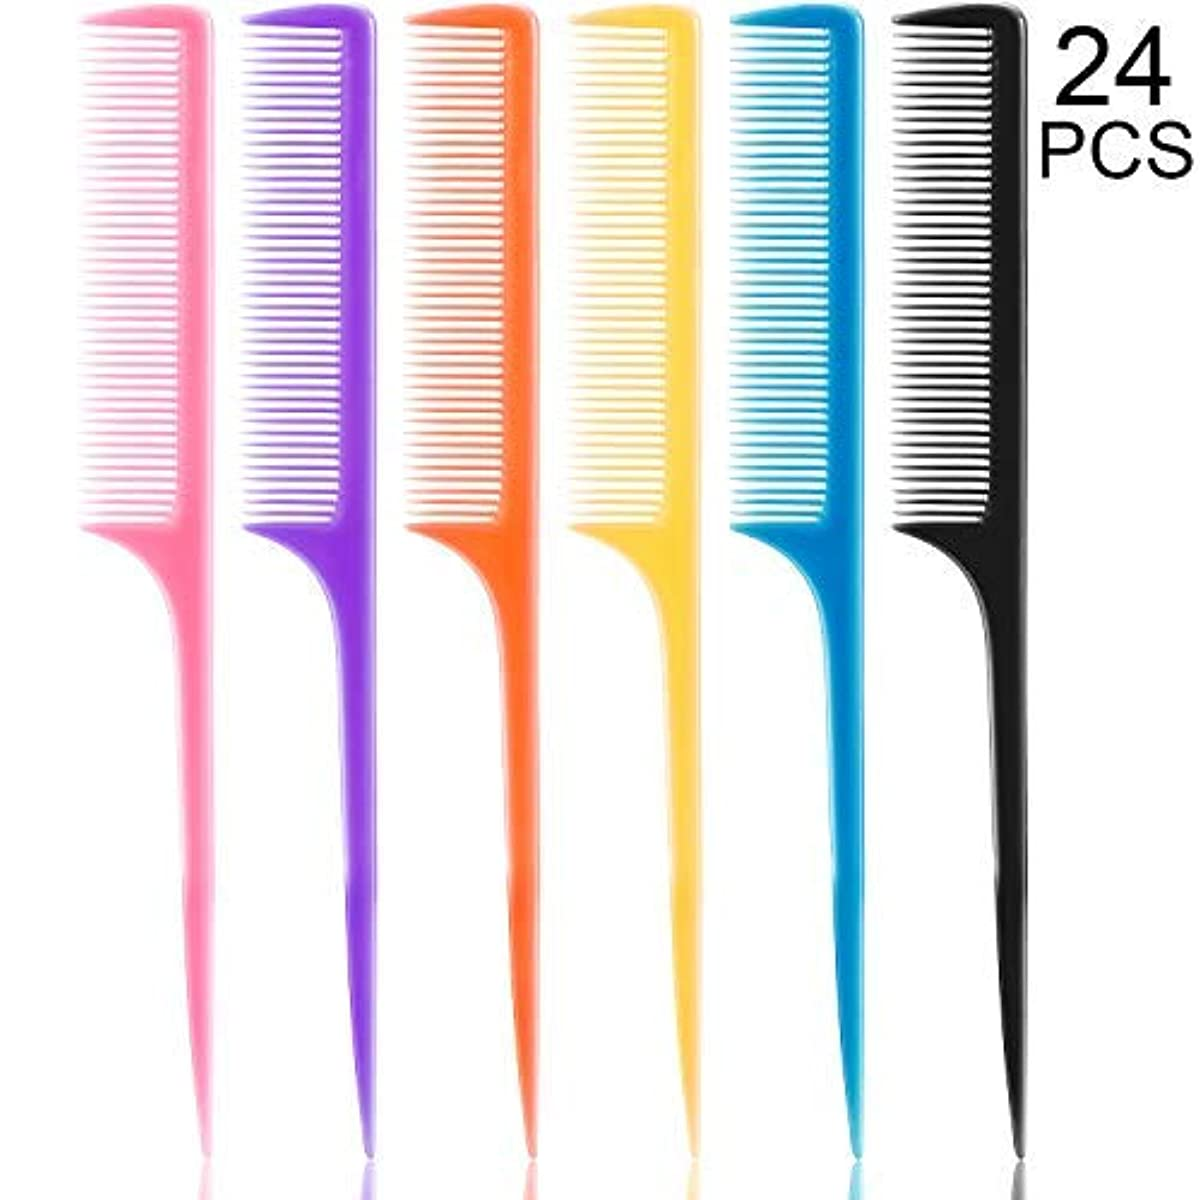 研磨裸彼自身24 Pieces Plastic Rat Tail Combs 8.5 Inch Fine-tooth Hair Combs Pin Tail Hair Styling Combs with Thin and Long...